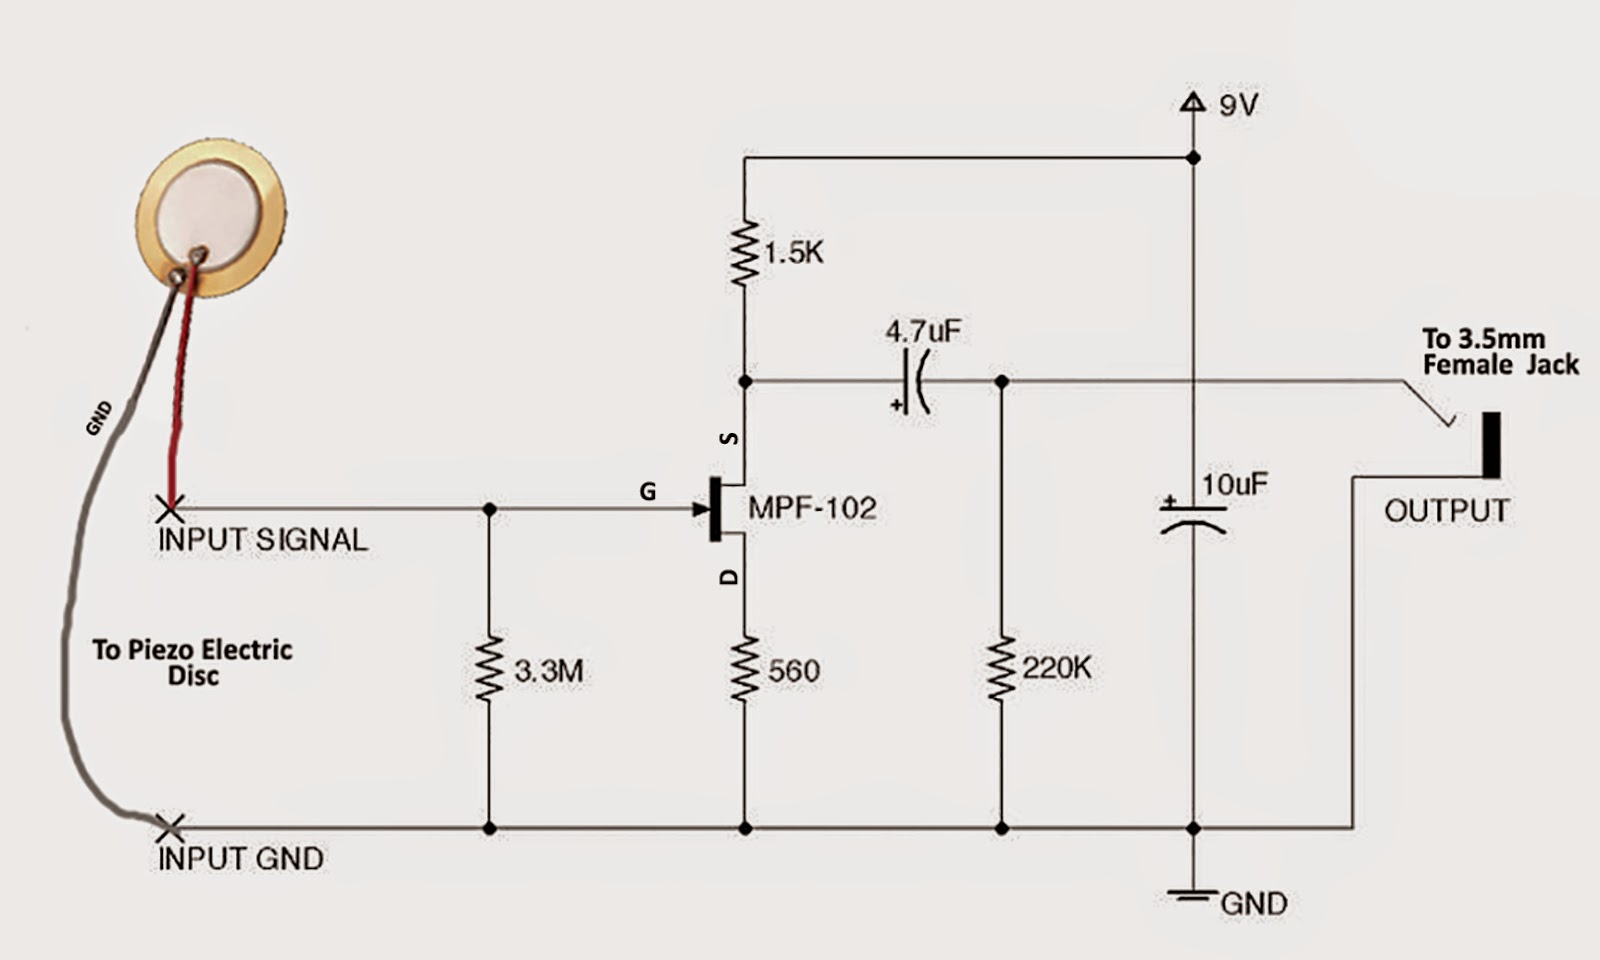 trrs jack wiring diagram images trrs headphone jack wiring trrs headphone jack wiring diagram on 3 5mm schematic